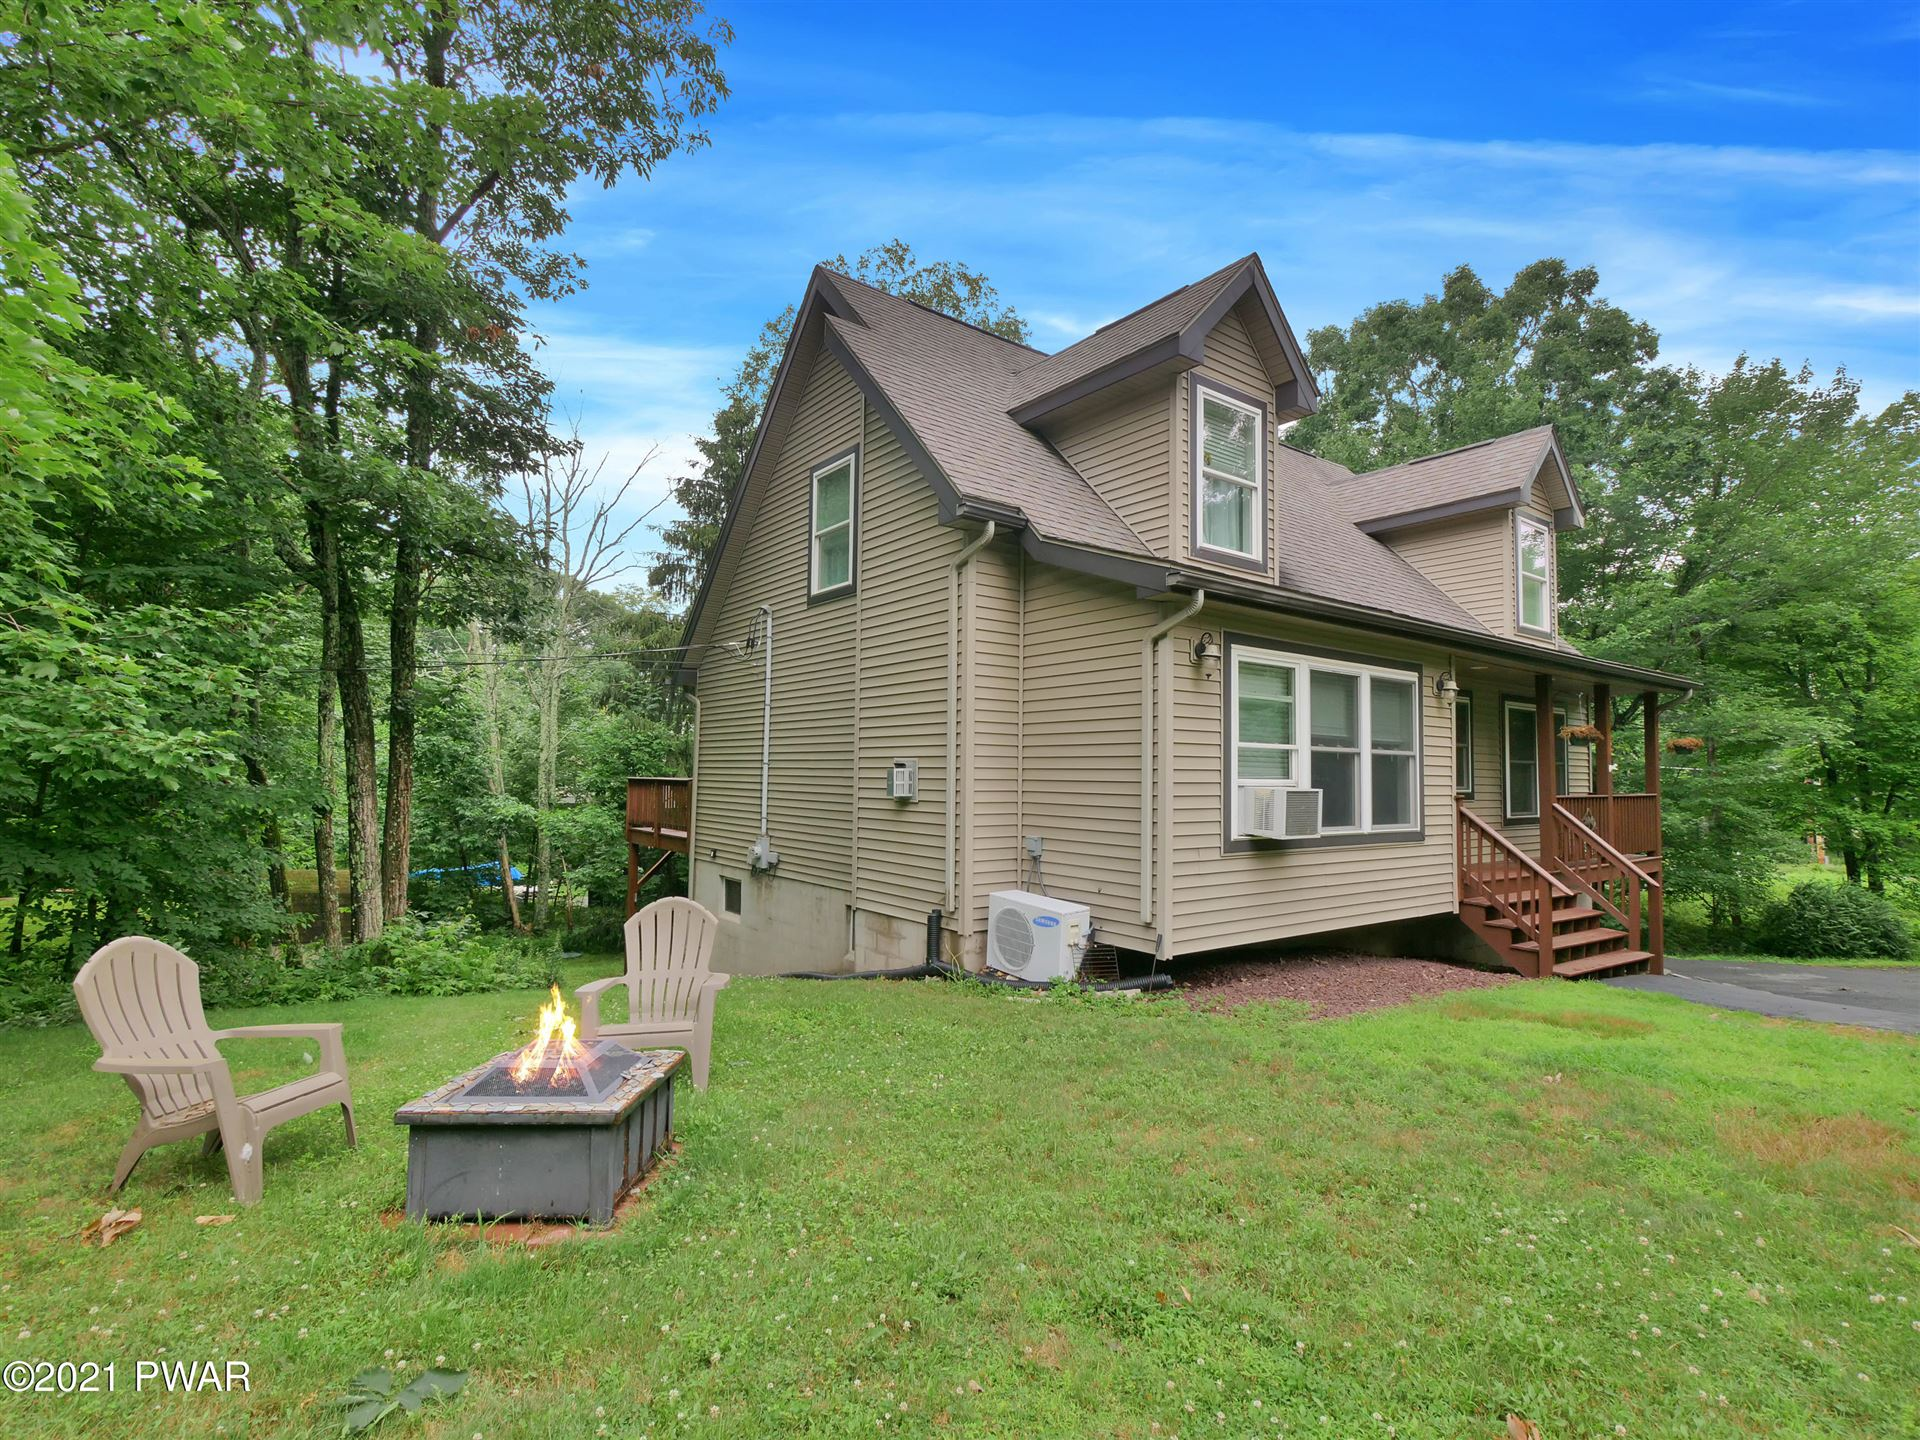 Photo of 111 Remuda Dr, Lords Valley, PA 18428 (MLS # 21-2678)